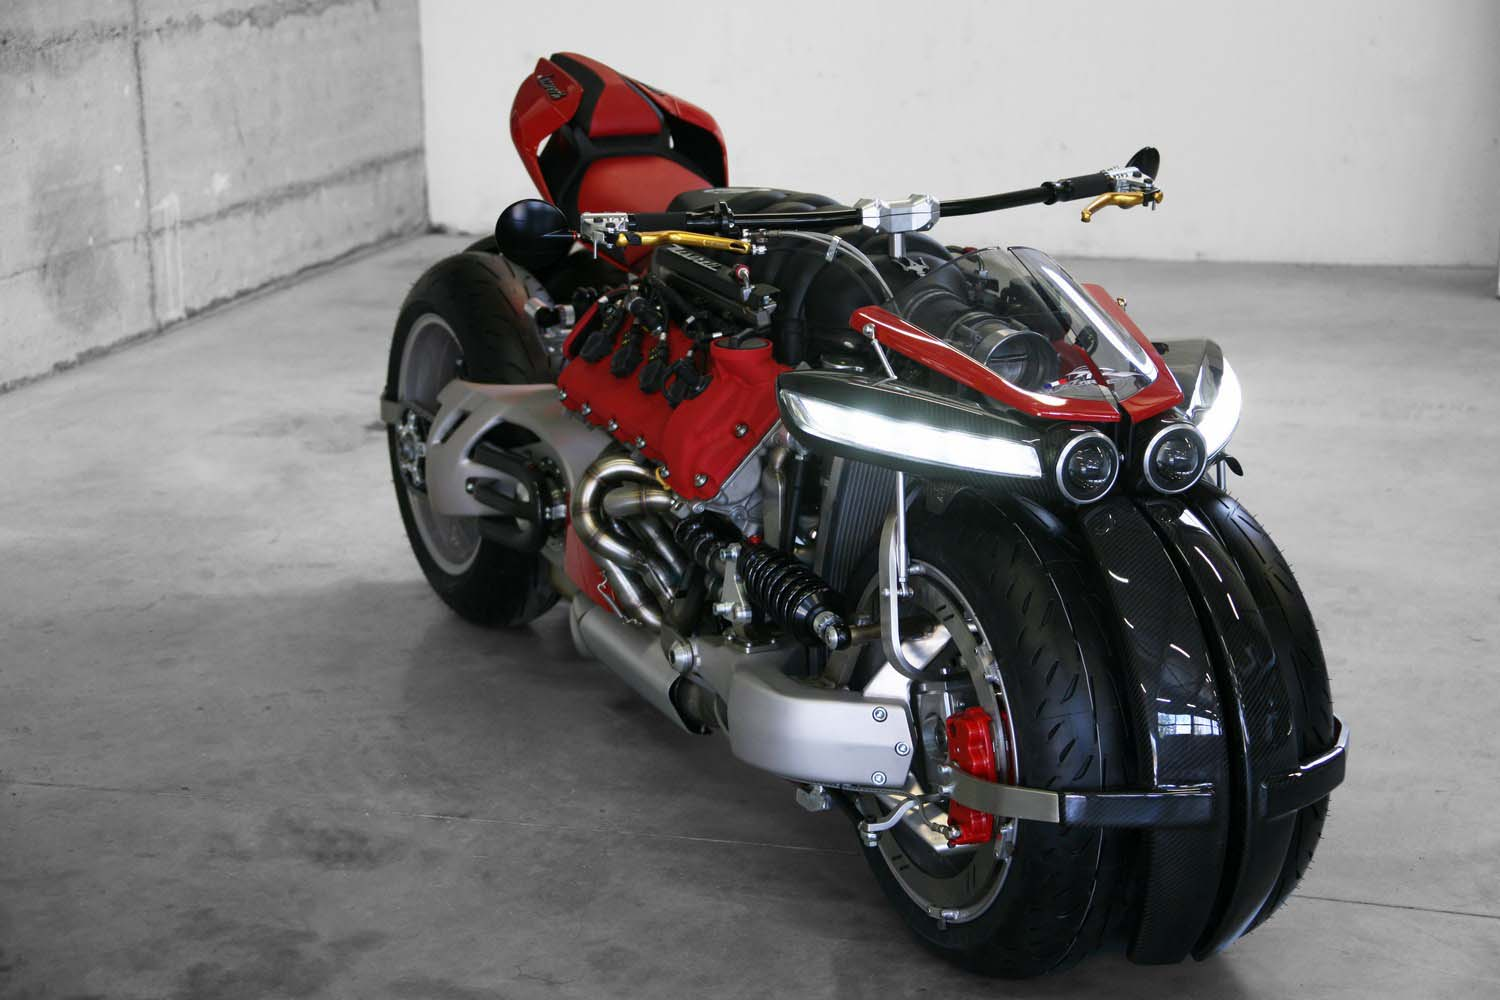 Disegni Motocross: A Maserati-Powered Leaning Quad